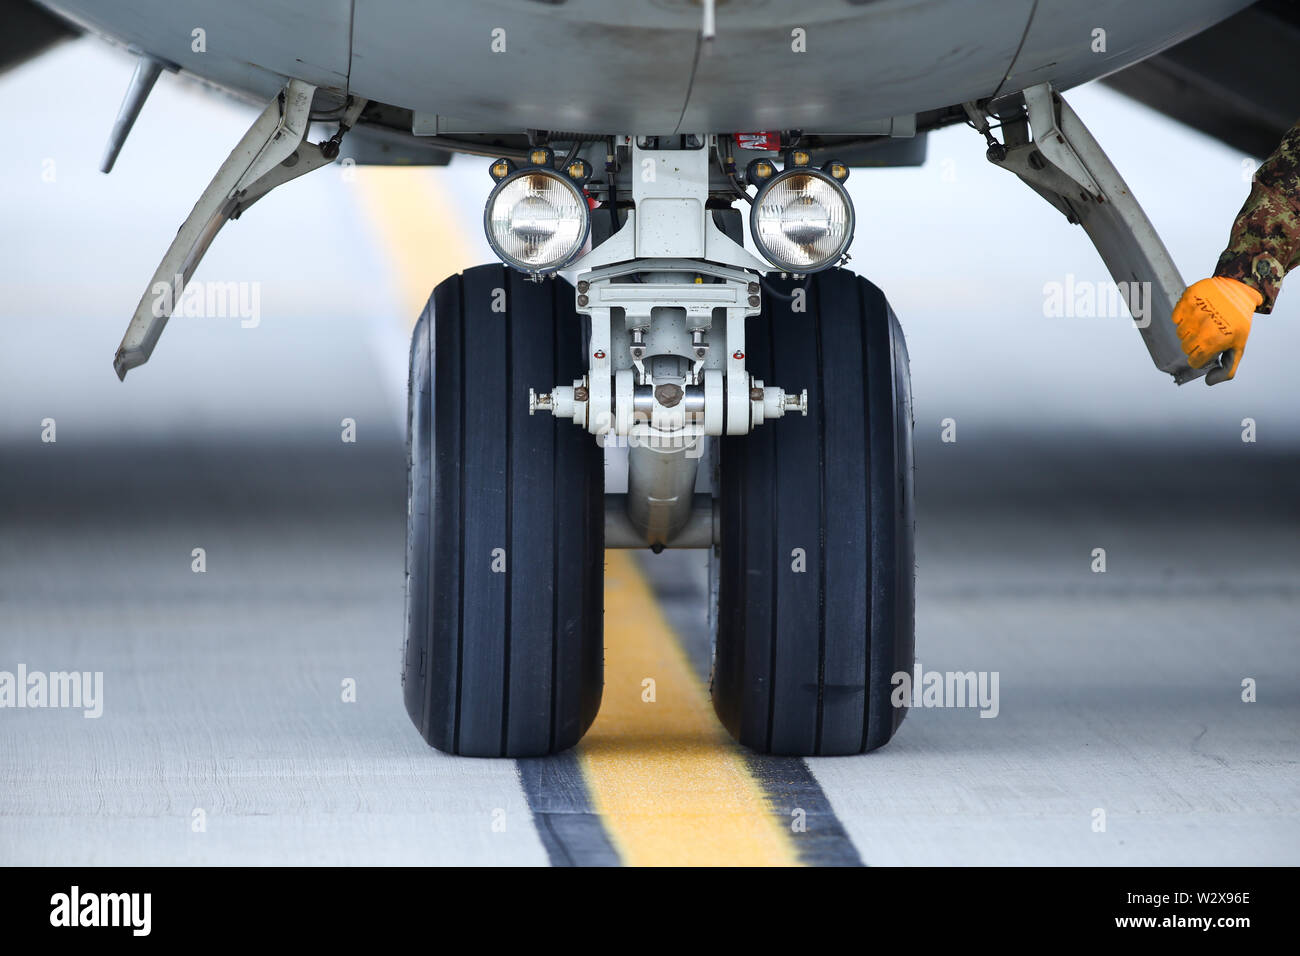 Details of the landing gear of a military cargo plane. - Stock Image